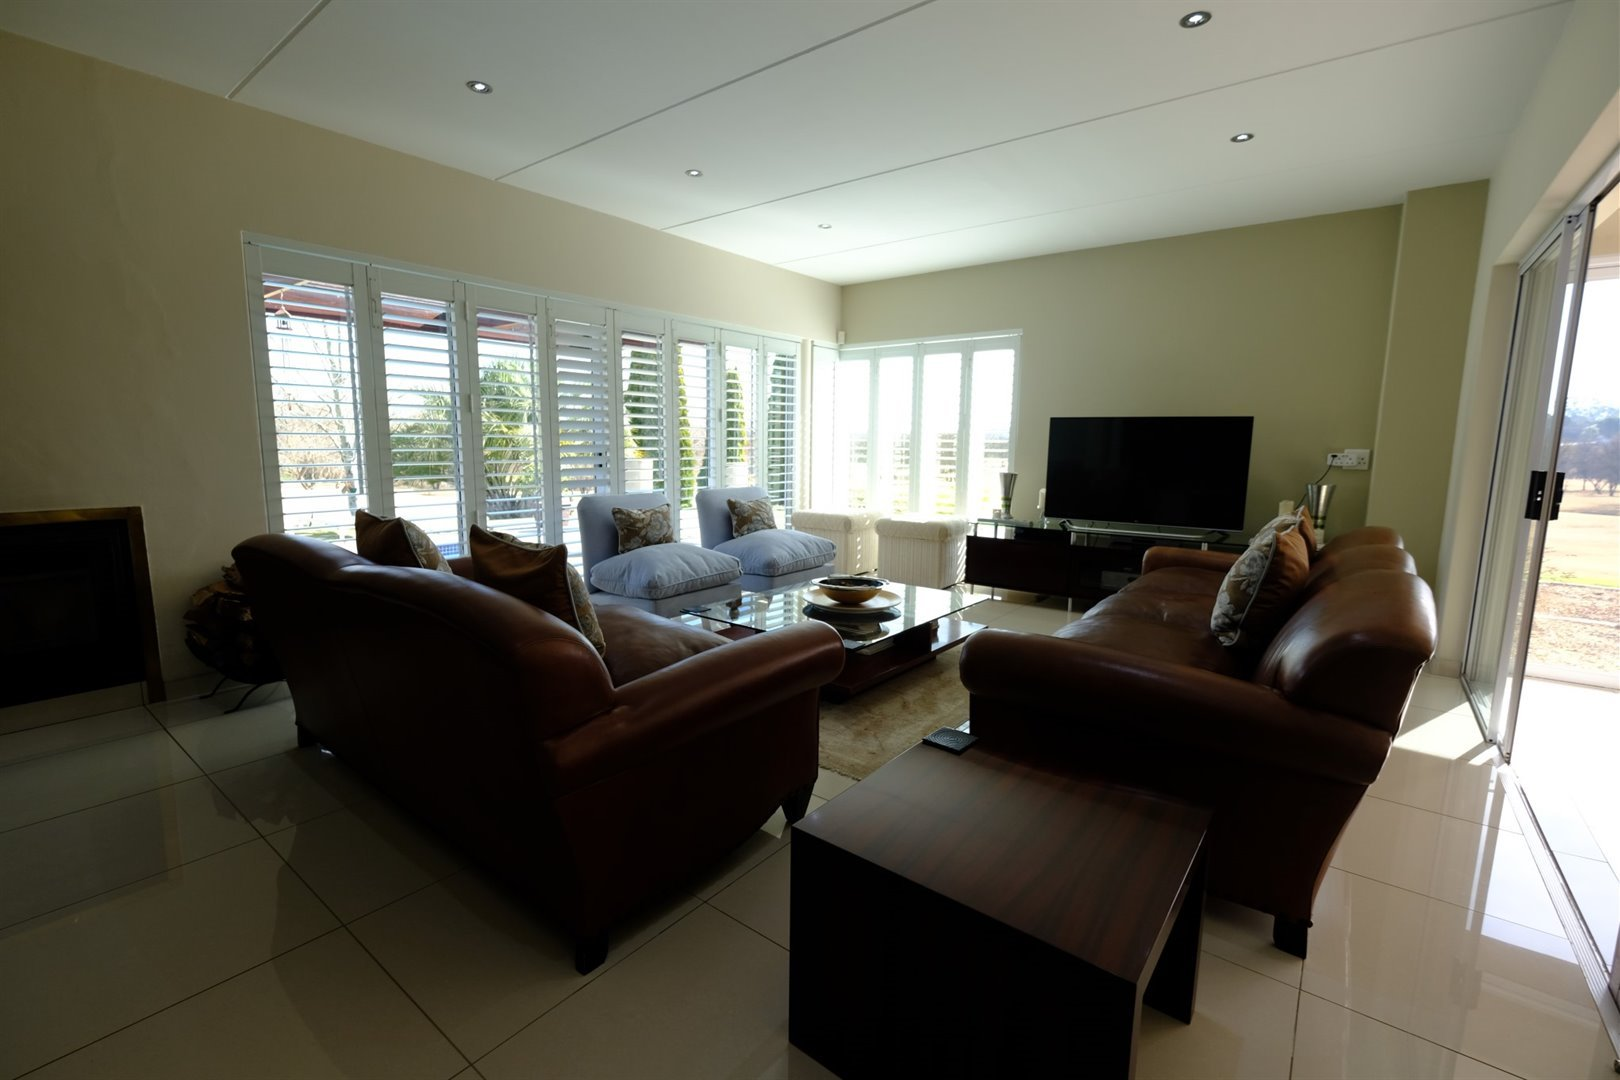 Three Rivers East property for sale. Ref No: 13378538. Picture no 13